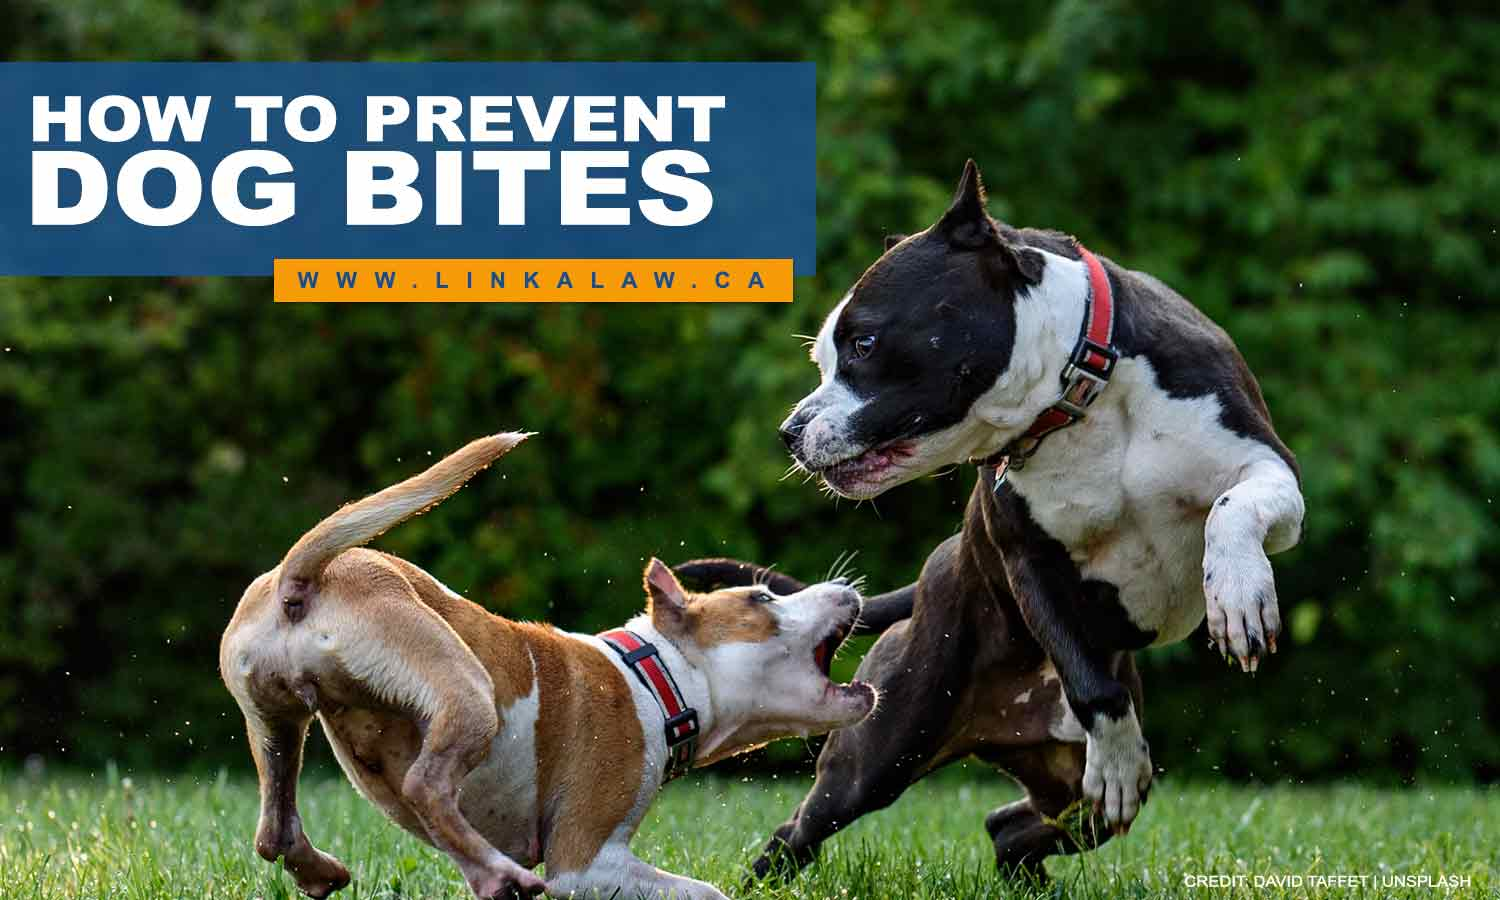 How to Prevent Dog Bites